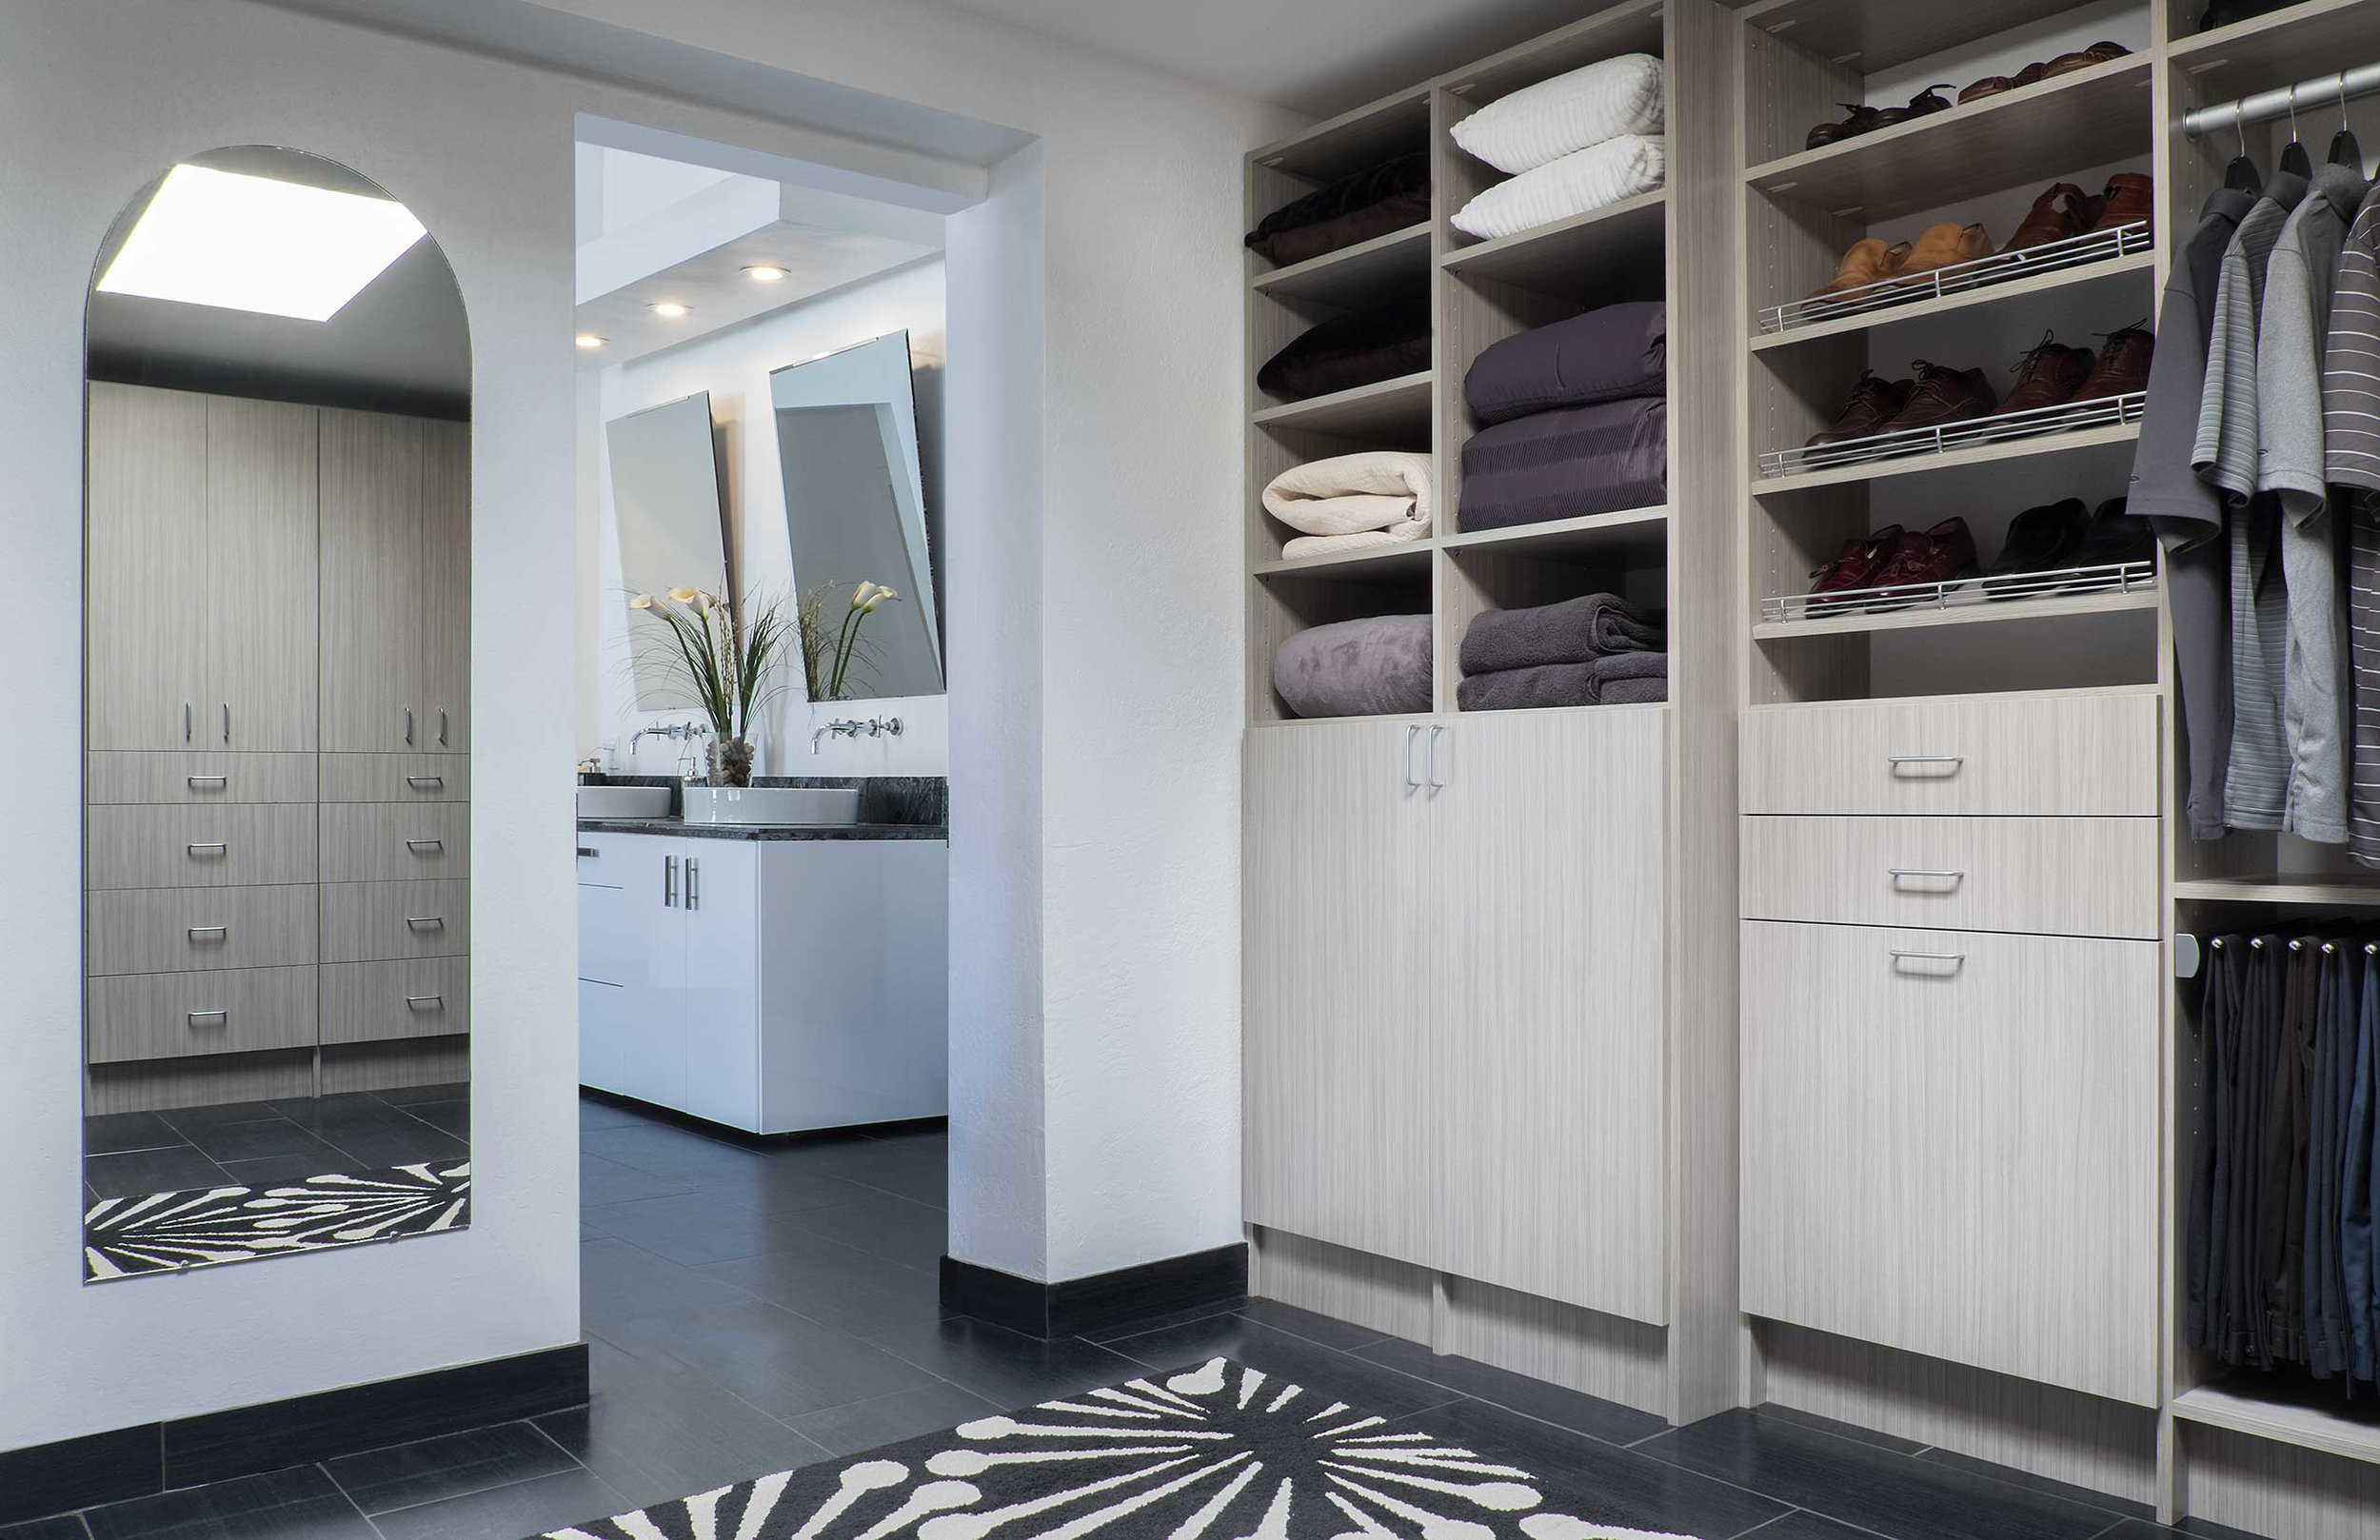 """Eliminate chaos and live better by editing your """"stuff"""" and storing it in a closet that works.  Call Closets of Tulsa  today for your FREE consultation and 3-D closet design:  918.609.0214"""